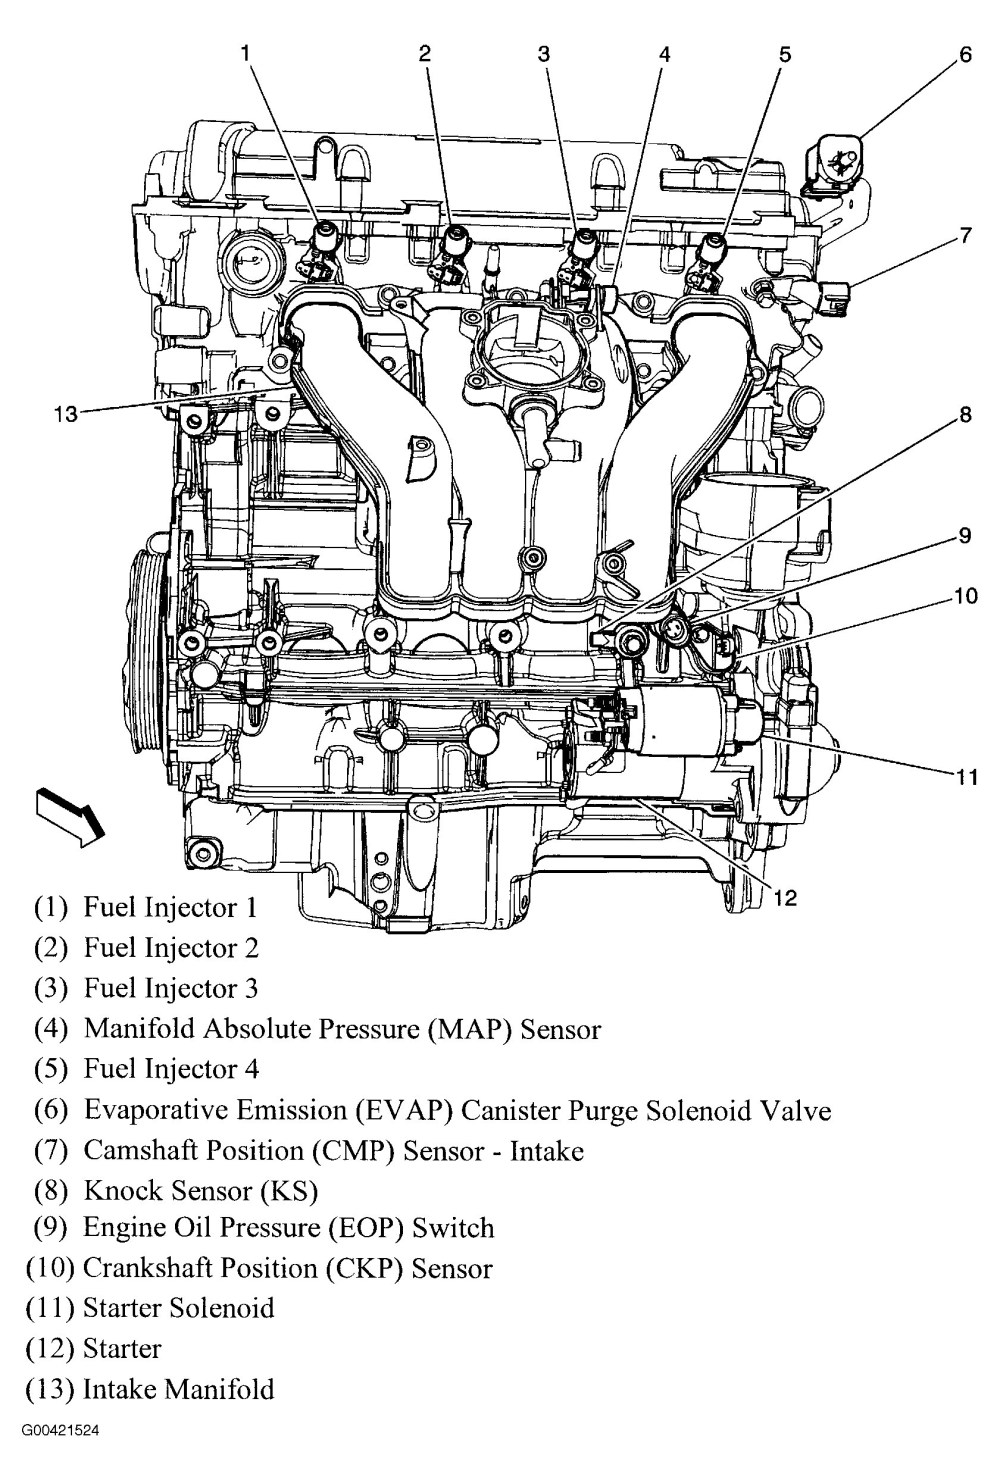 medium resolution of 2005 suburban engine diagram wiring diagram datasource 2005 chevy express engine diagram wiring diagram used 2005